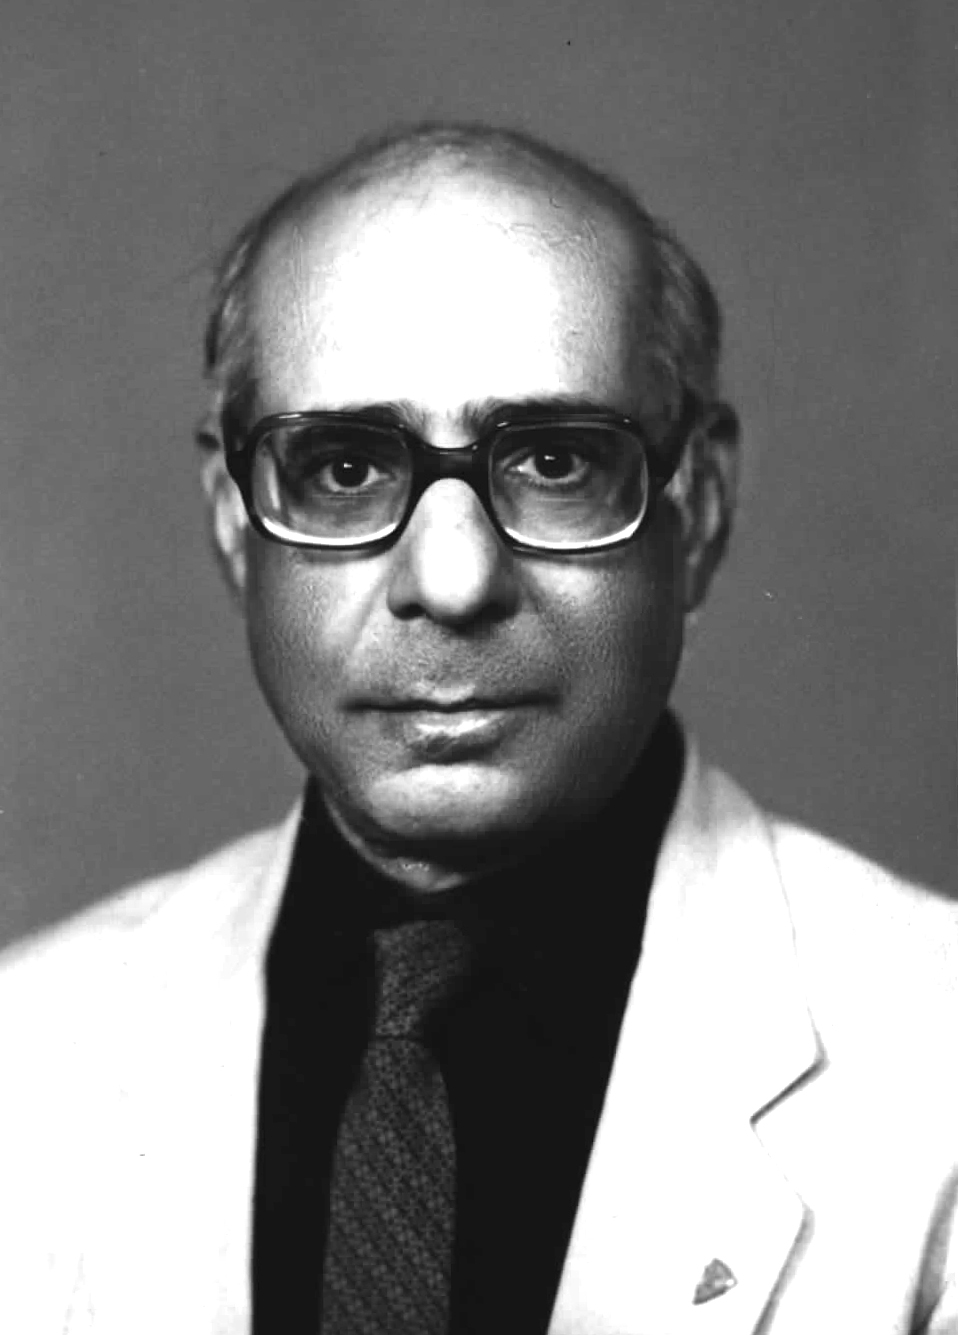 Profile image of Raj Mahindra, Dr